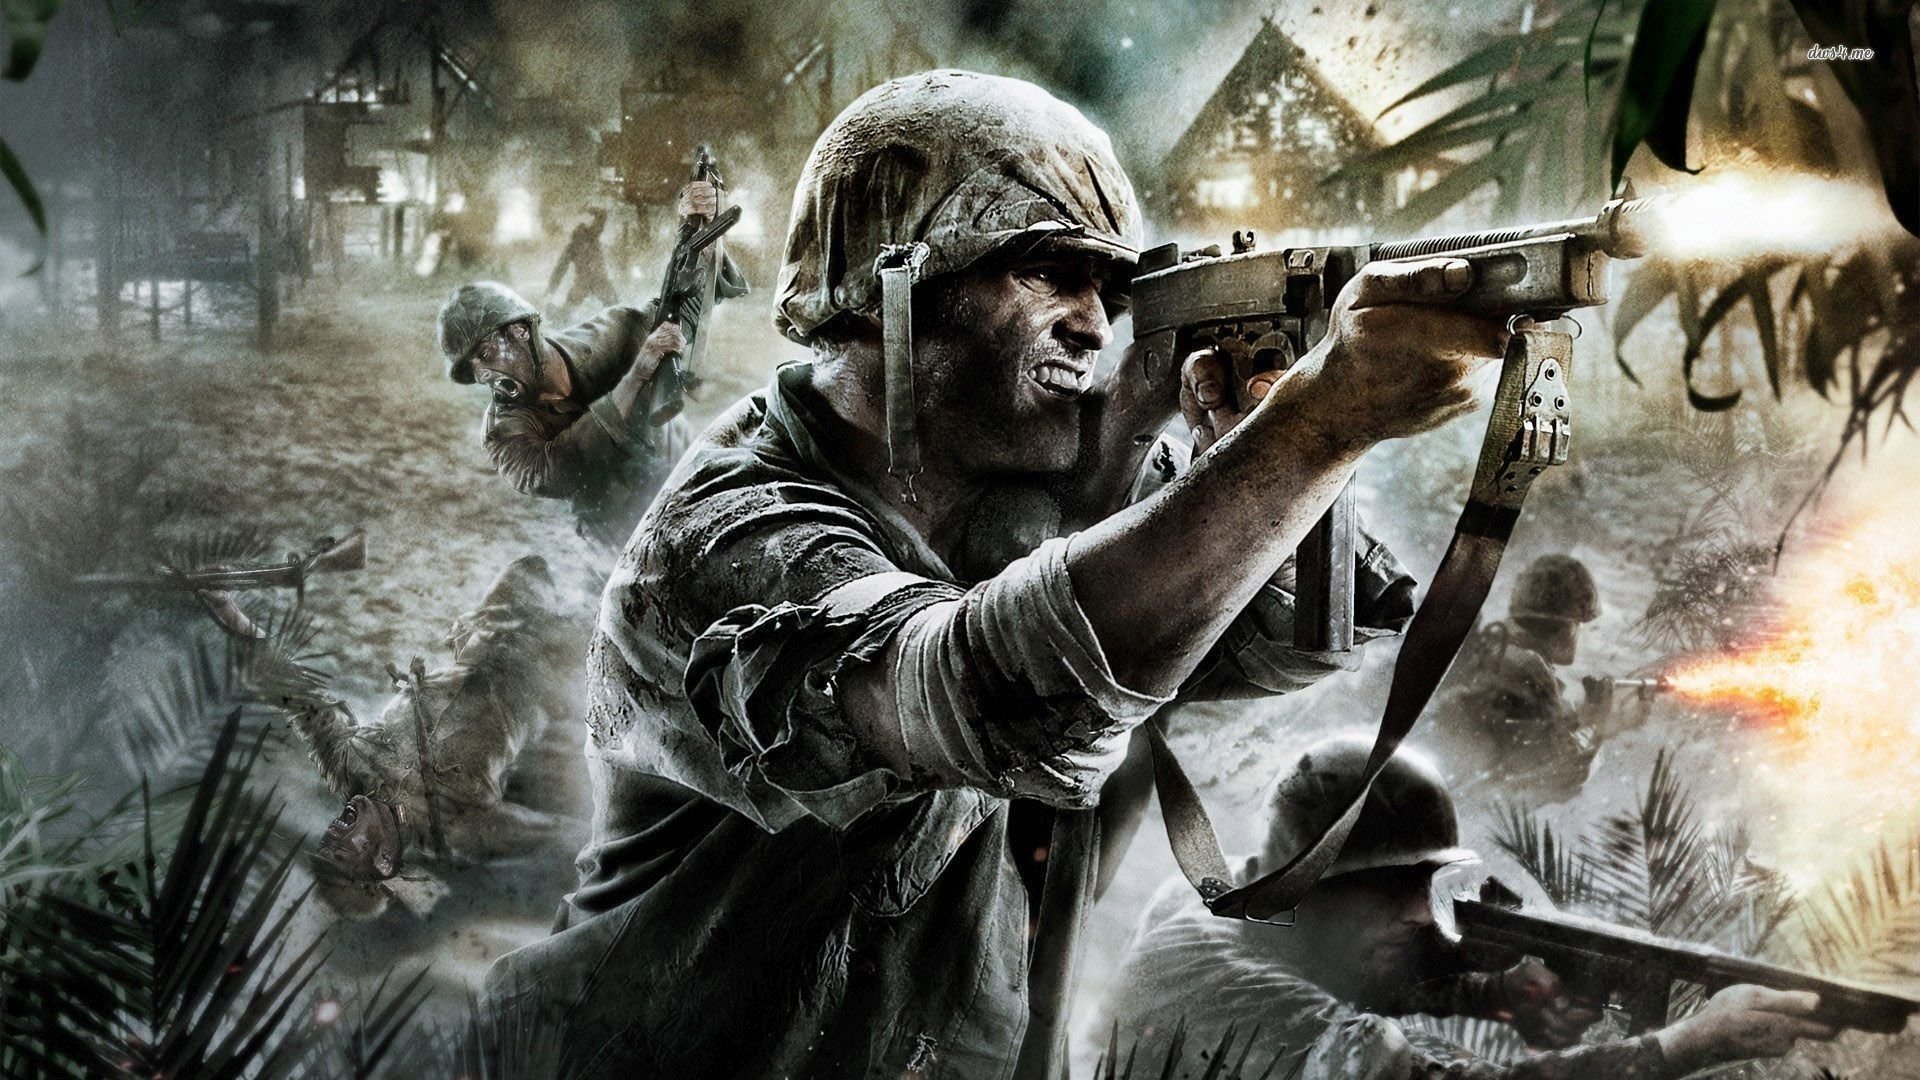 Call Of Duty World At War Wallpaper 1920x1080 Wallpapertag